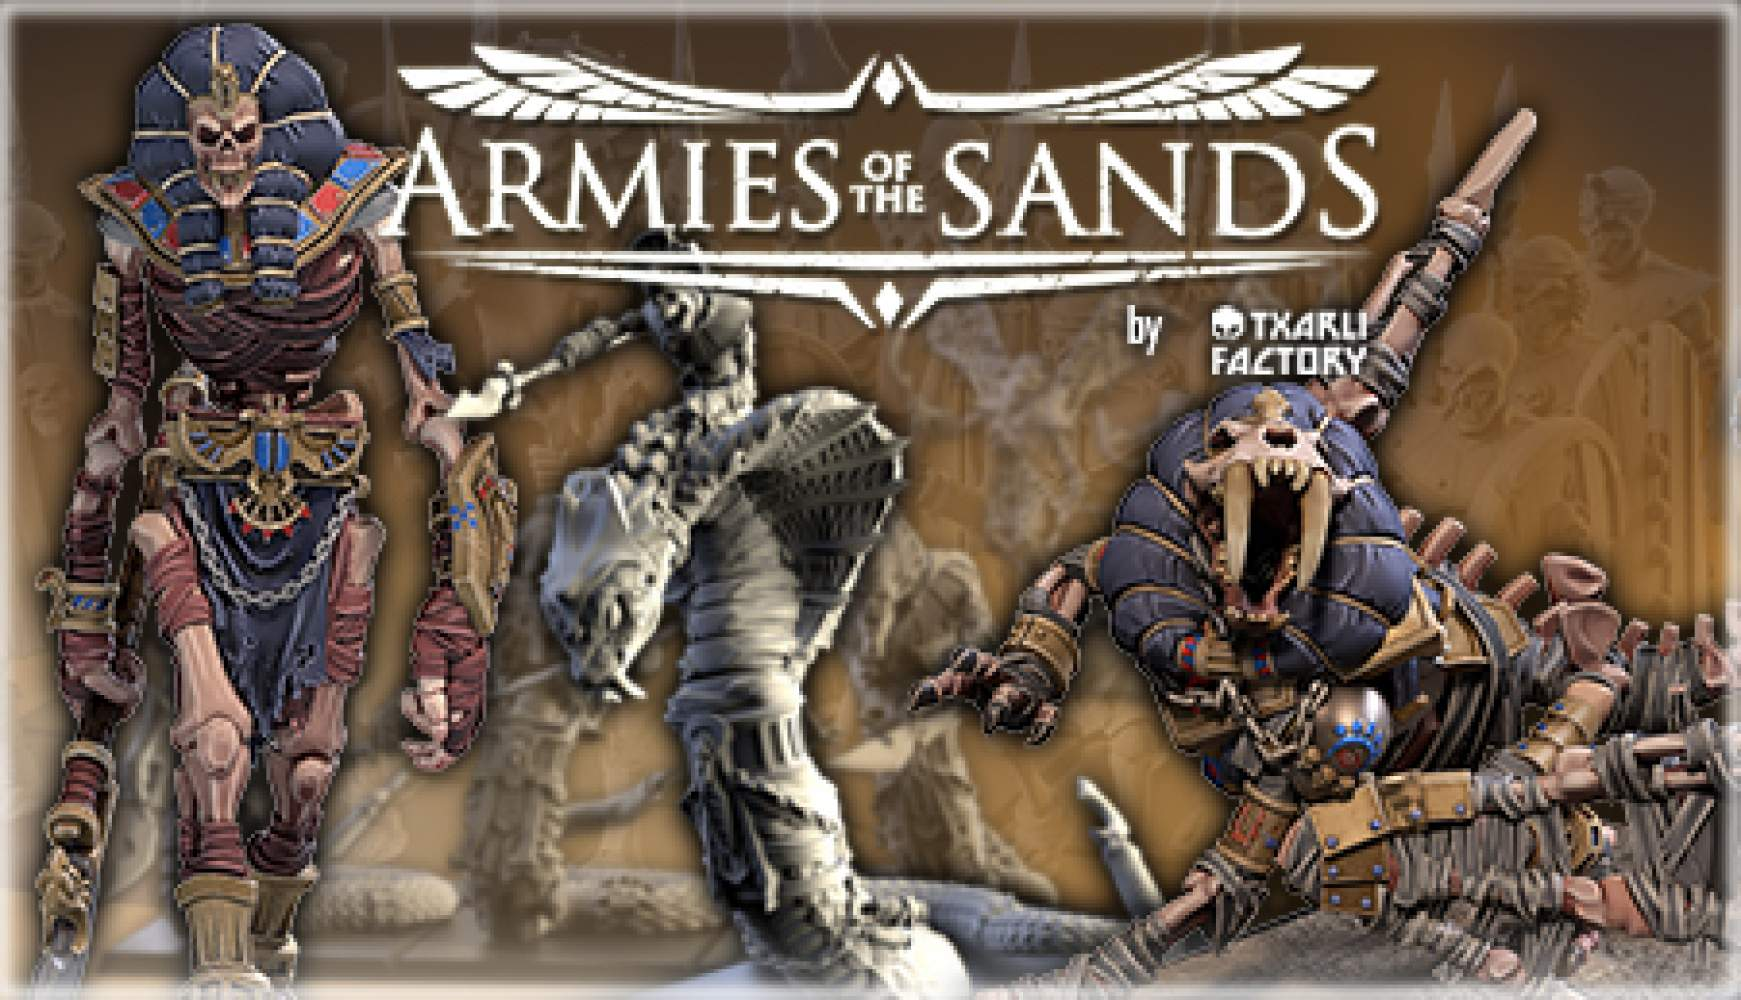 ARMIES OF THE SANDS